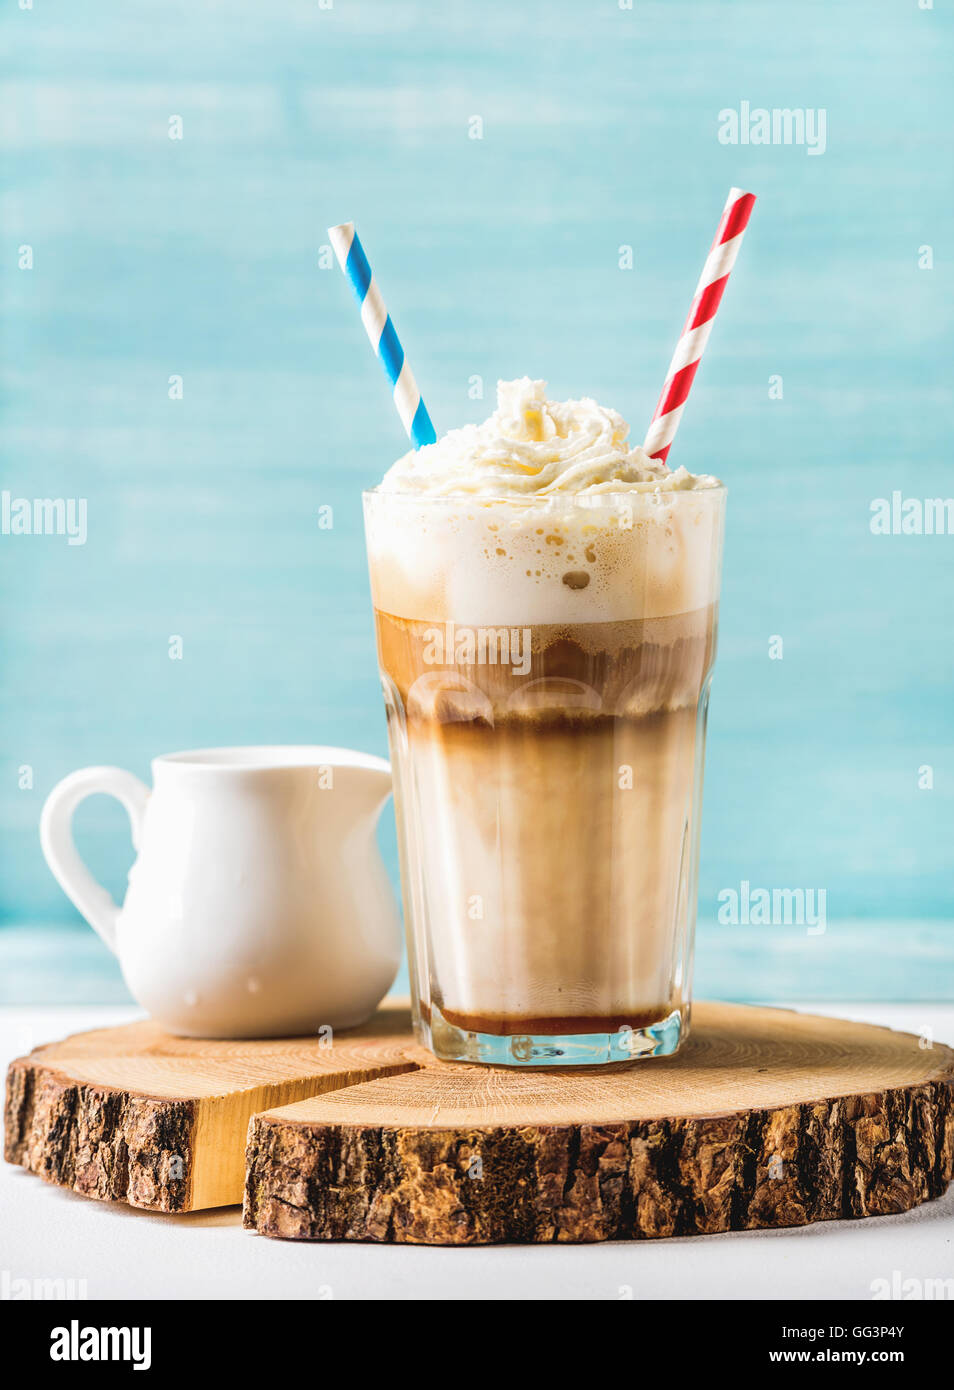 Latte macchiato with whipped cream in tall glass and pitcher on round wooden board over blue painted wall background - Stock Image